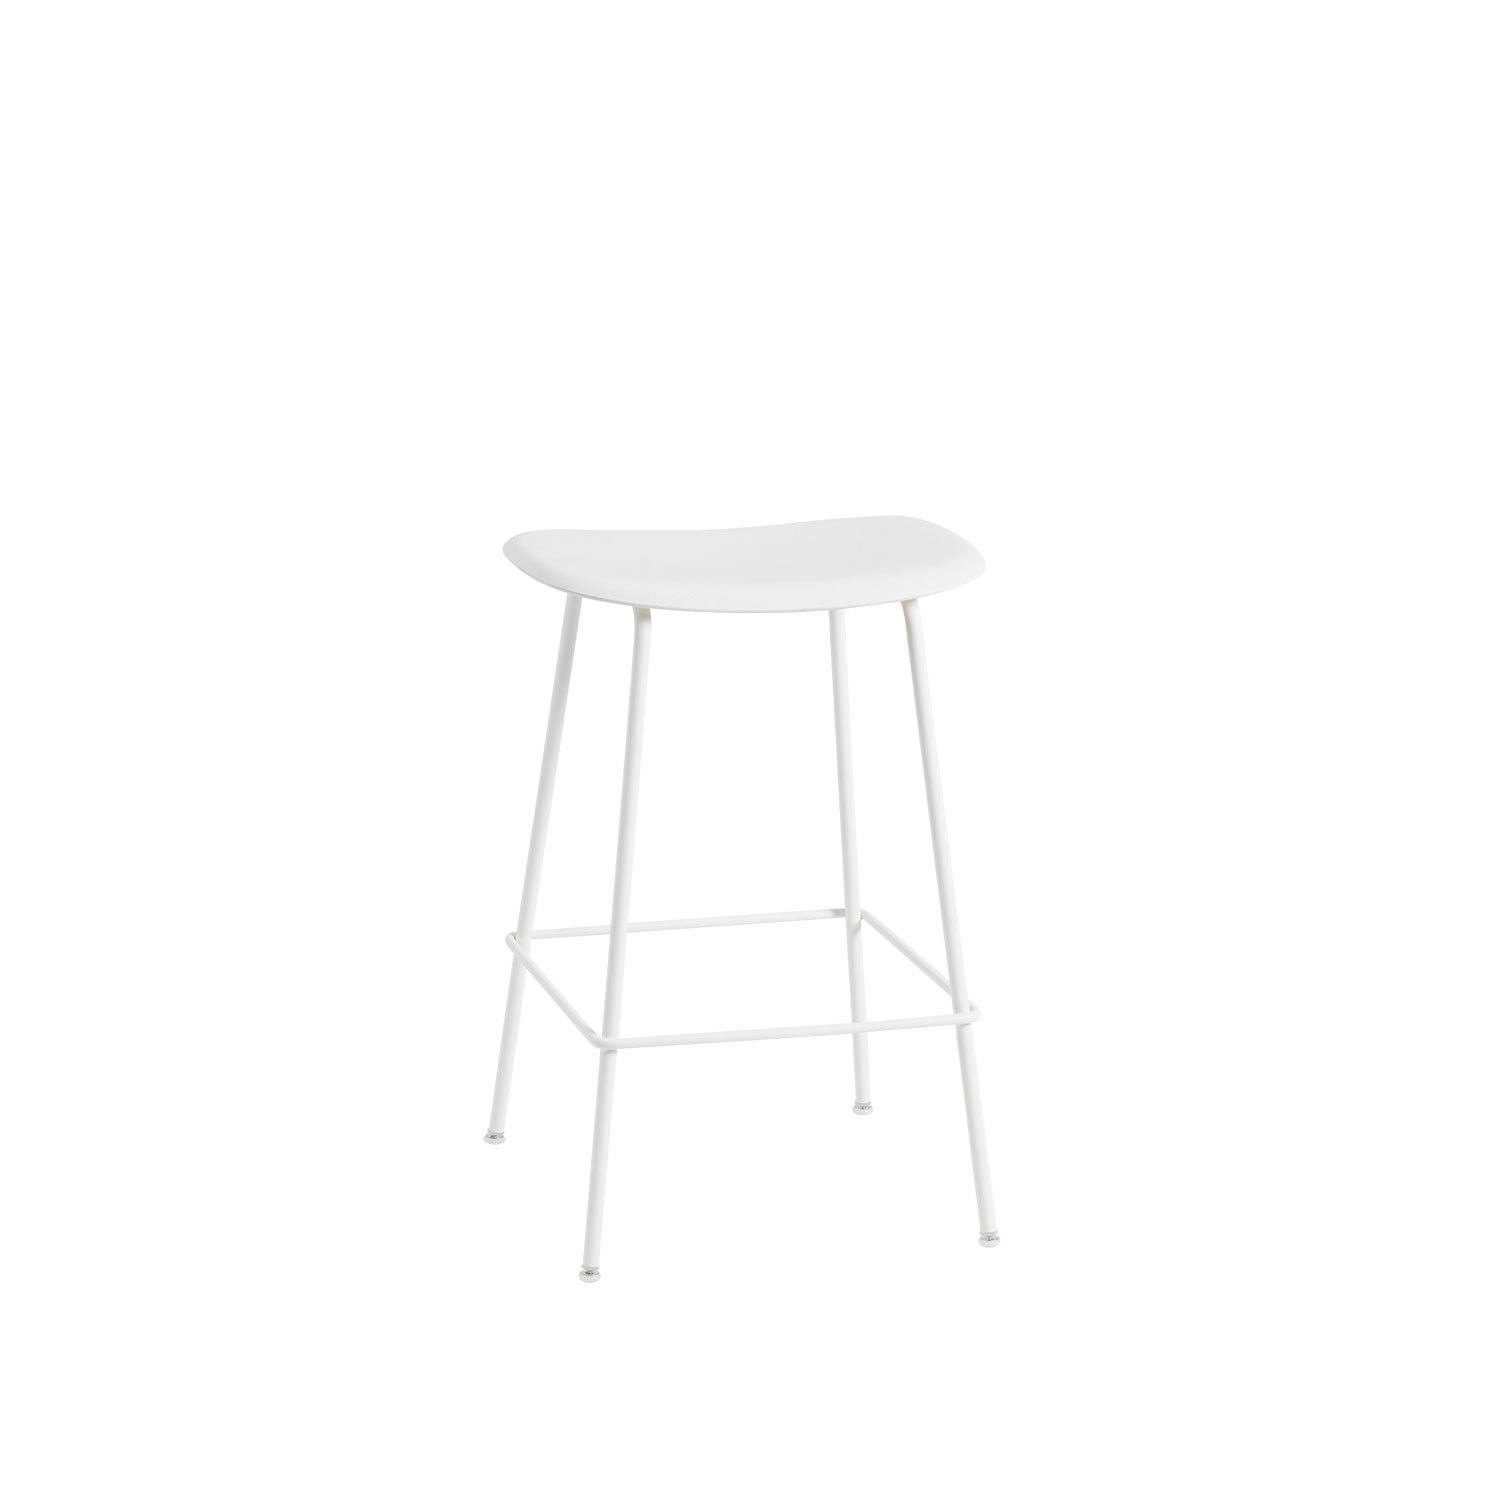 Fiber Tube bar stool, naturell vit/vit